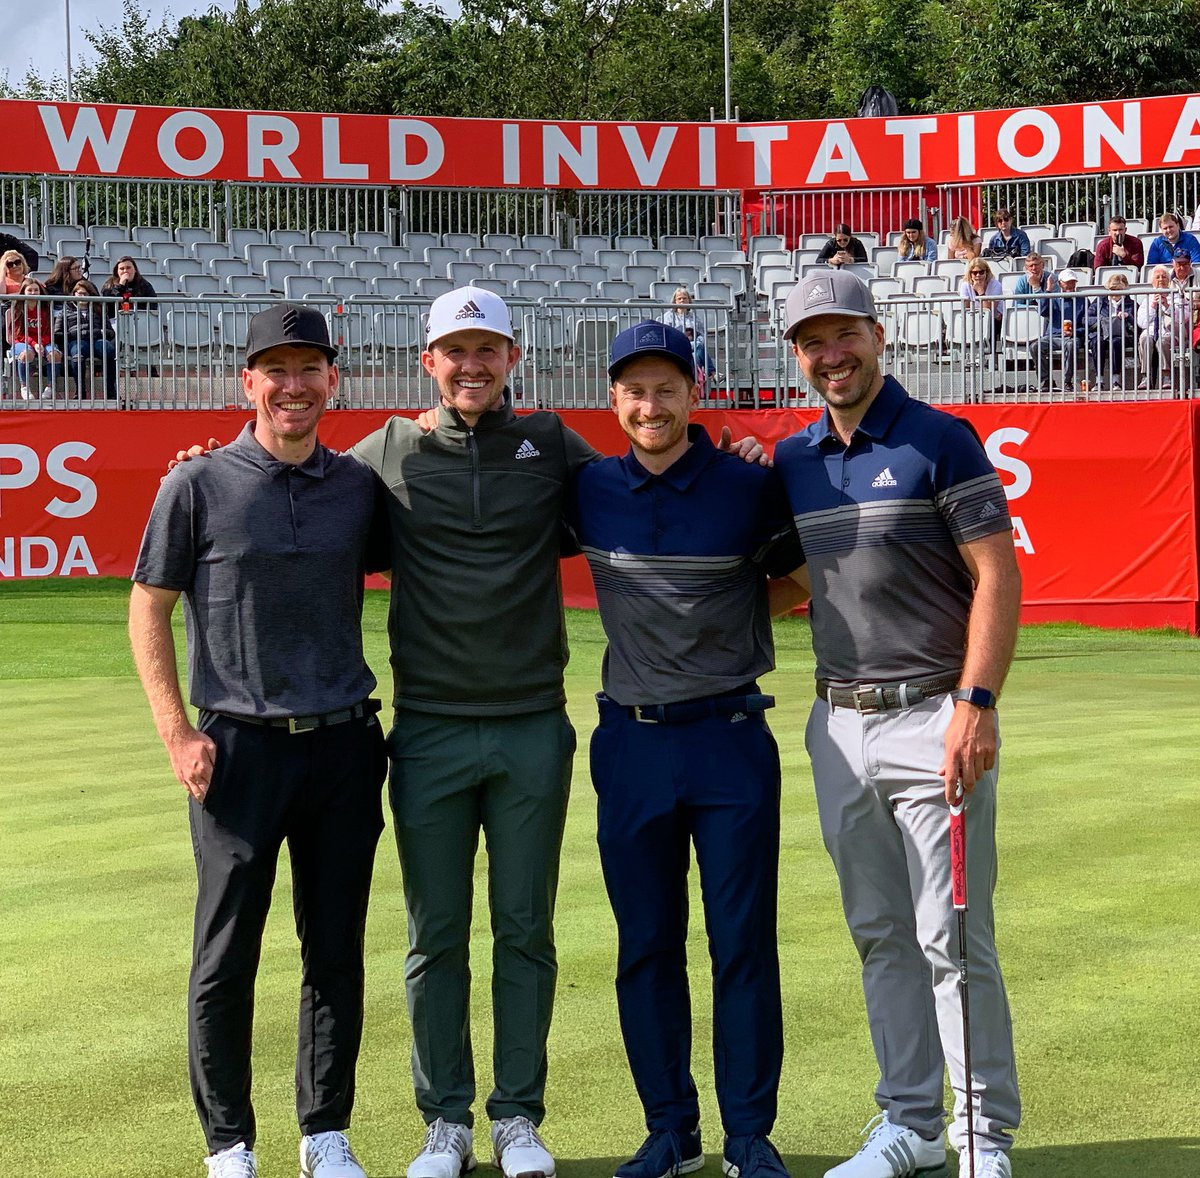 Great event organised by @modestgolf this week for the @ISPSHanda @World_Inv_Golf men and women playing for the same money, on the same course @GalgormResort I hope this is a look into the future of golf ⛳️